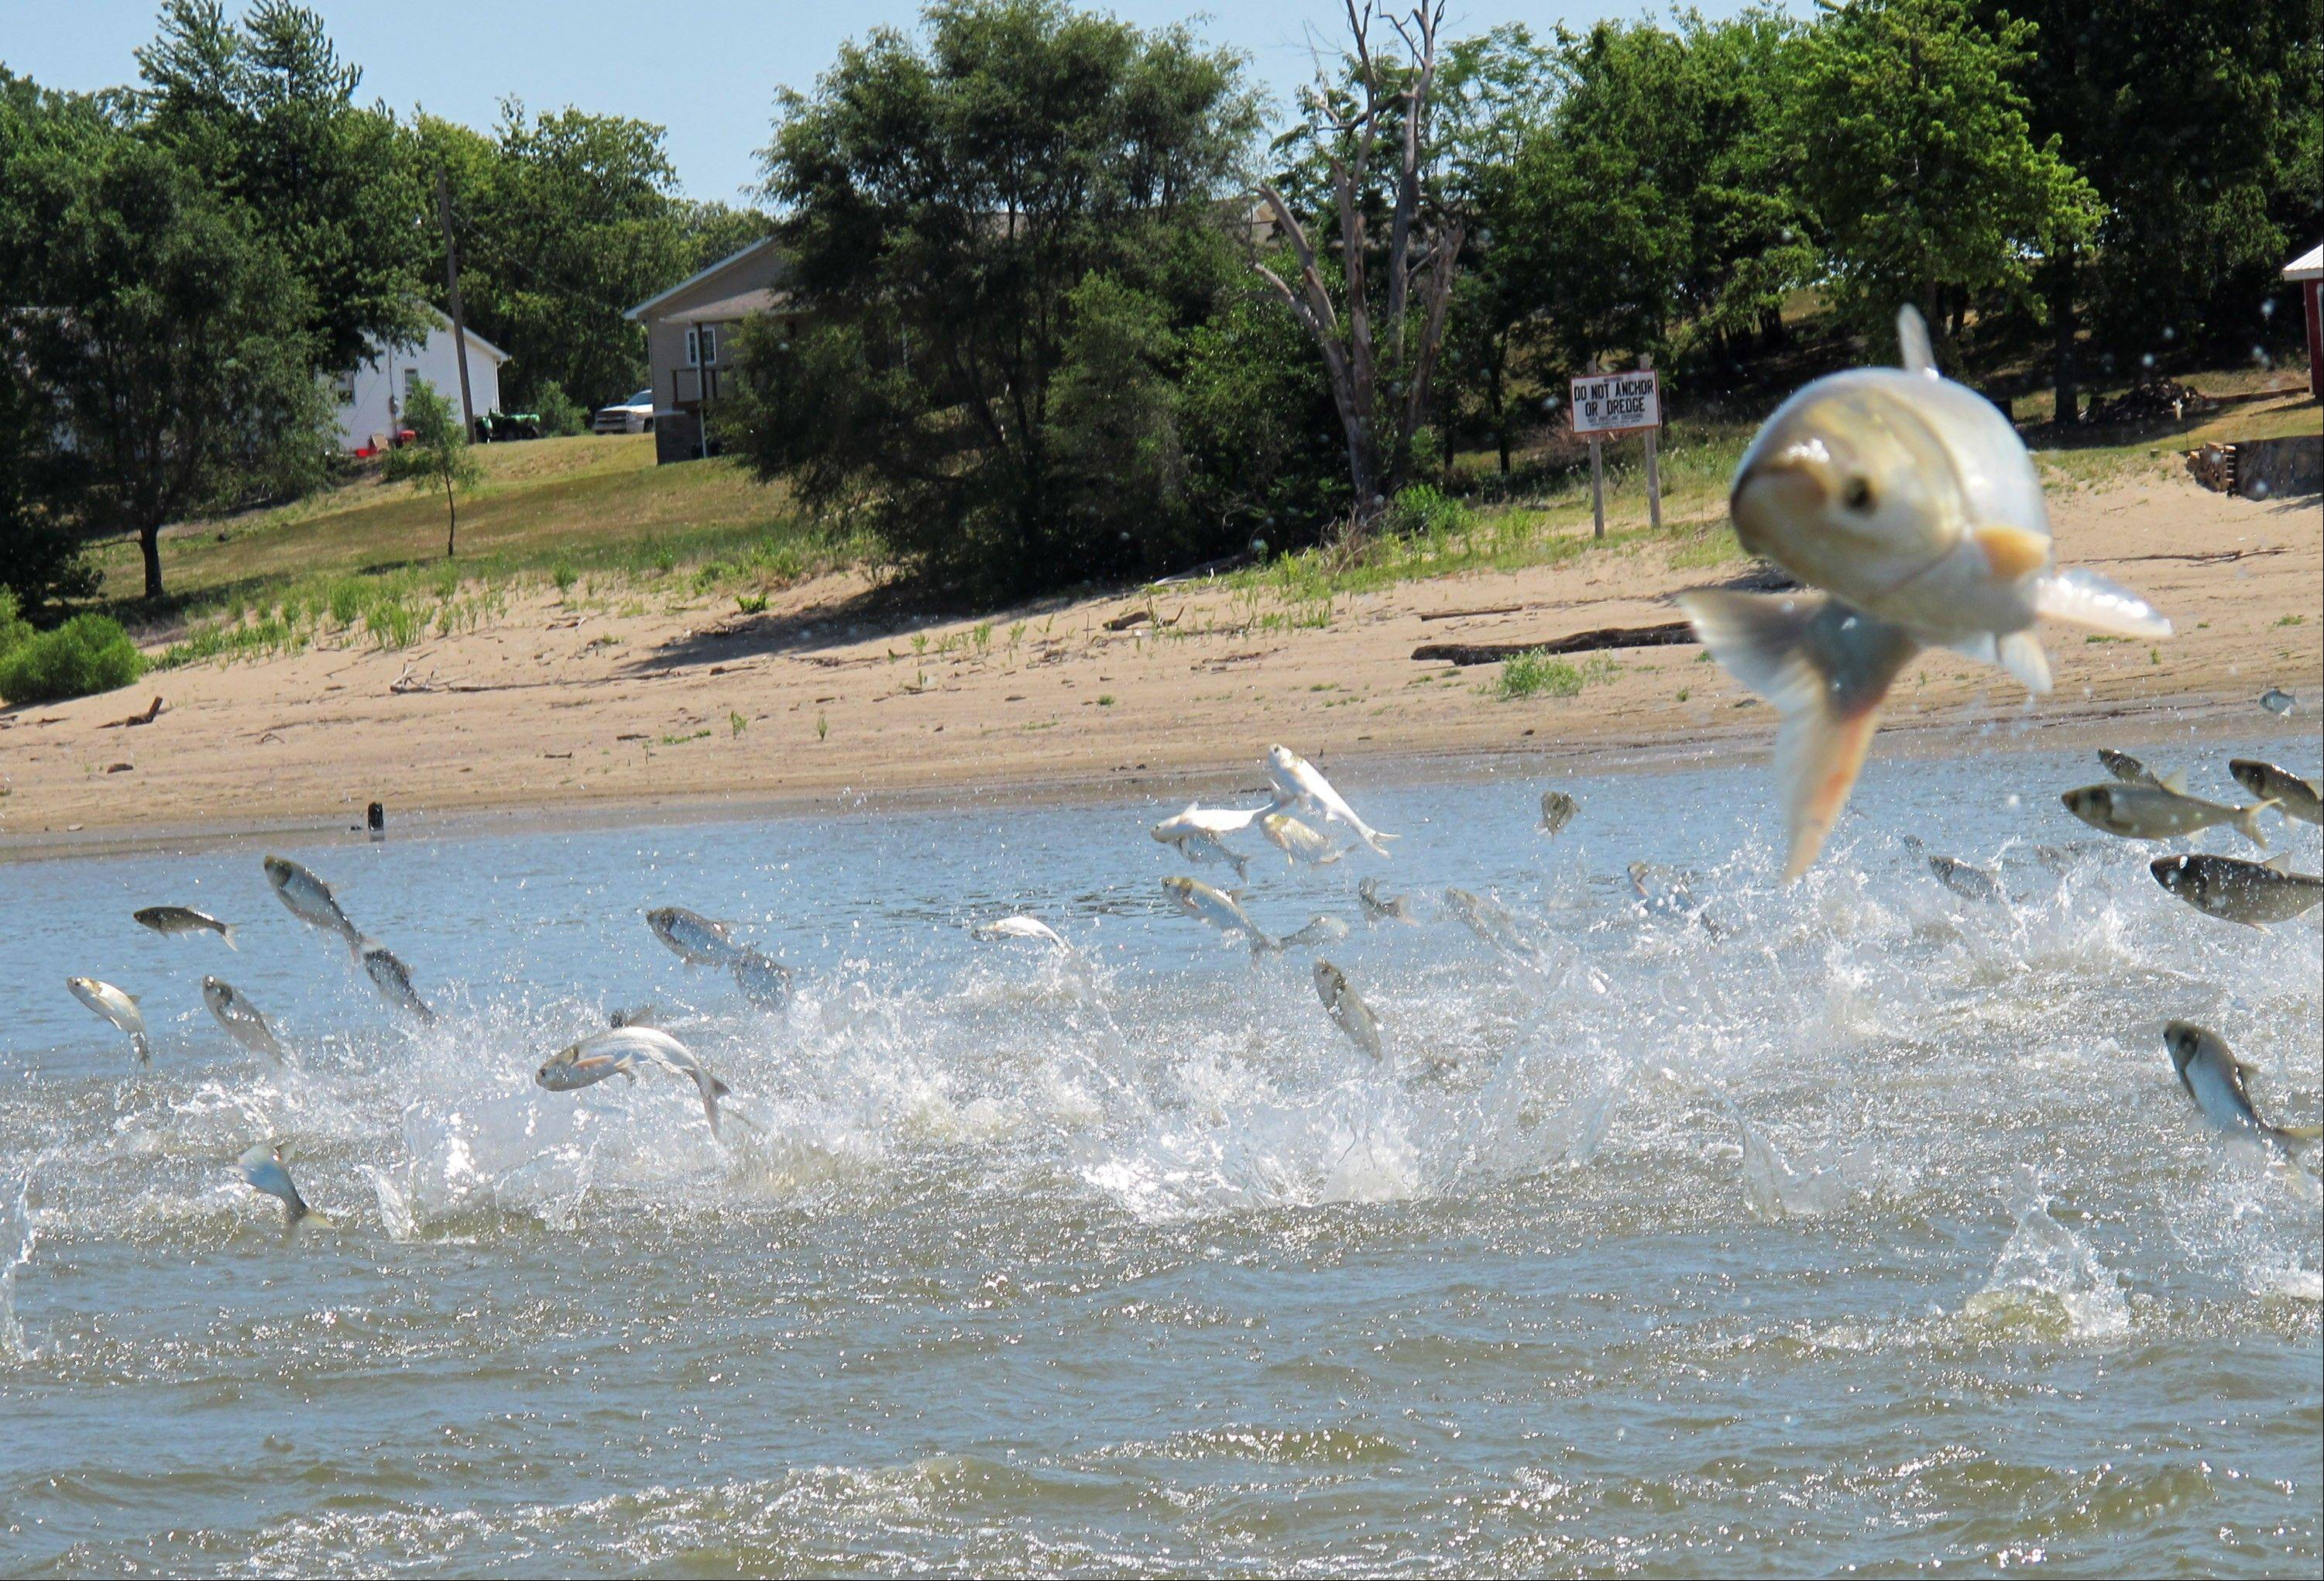 Asian carp, jolted by an electric current from a research boat, jump from the Illinois River near Havana, Ill. With this year's spending, the Obama administration will have devoted $200 million over four years to keep the Great Lakes carp-free.